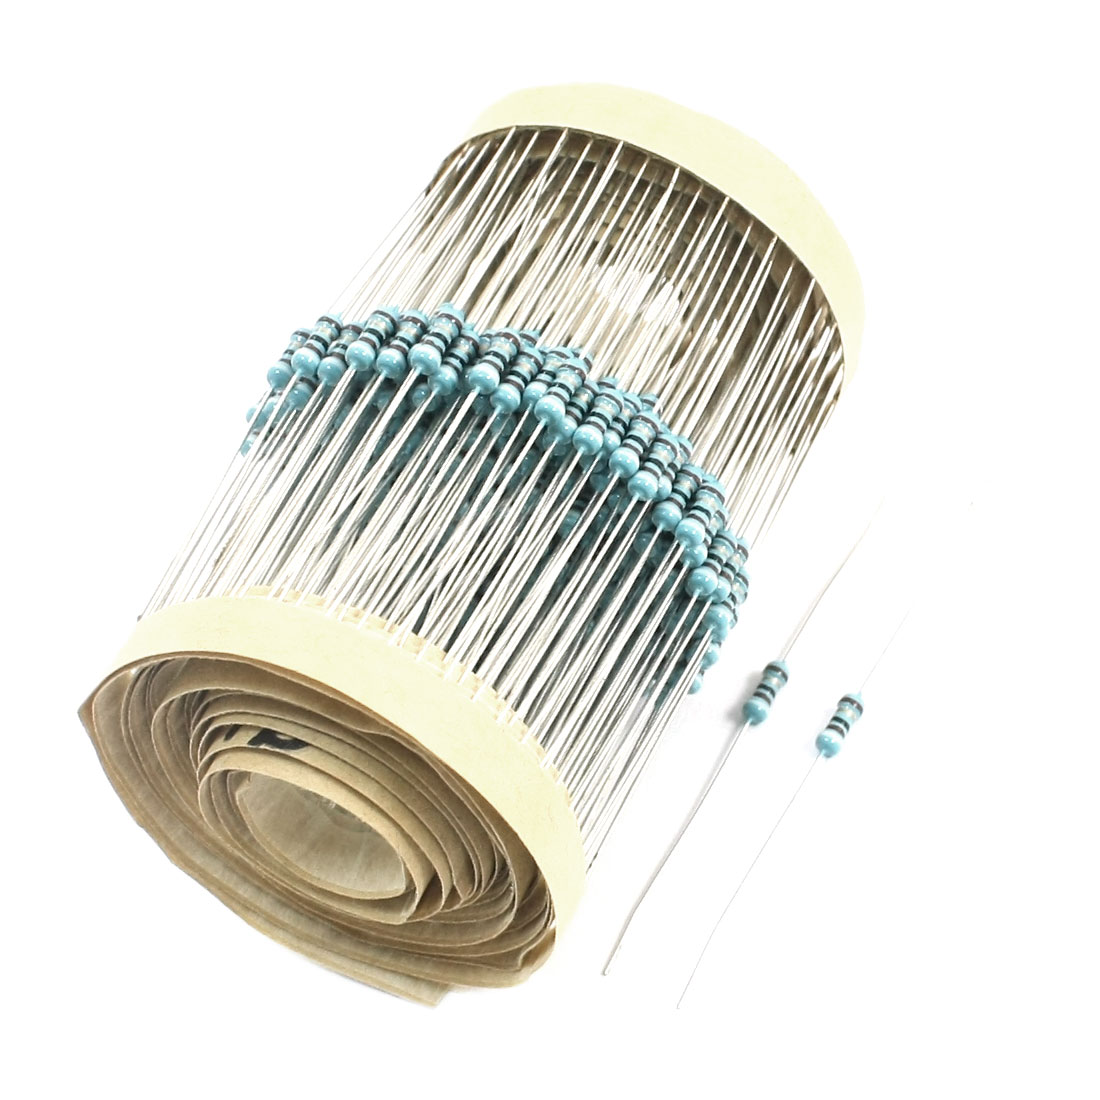 300Pcs Axial Lead Through Hole 0.25Watt 1% 91 Ohm Metal Film Resistor